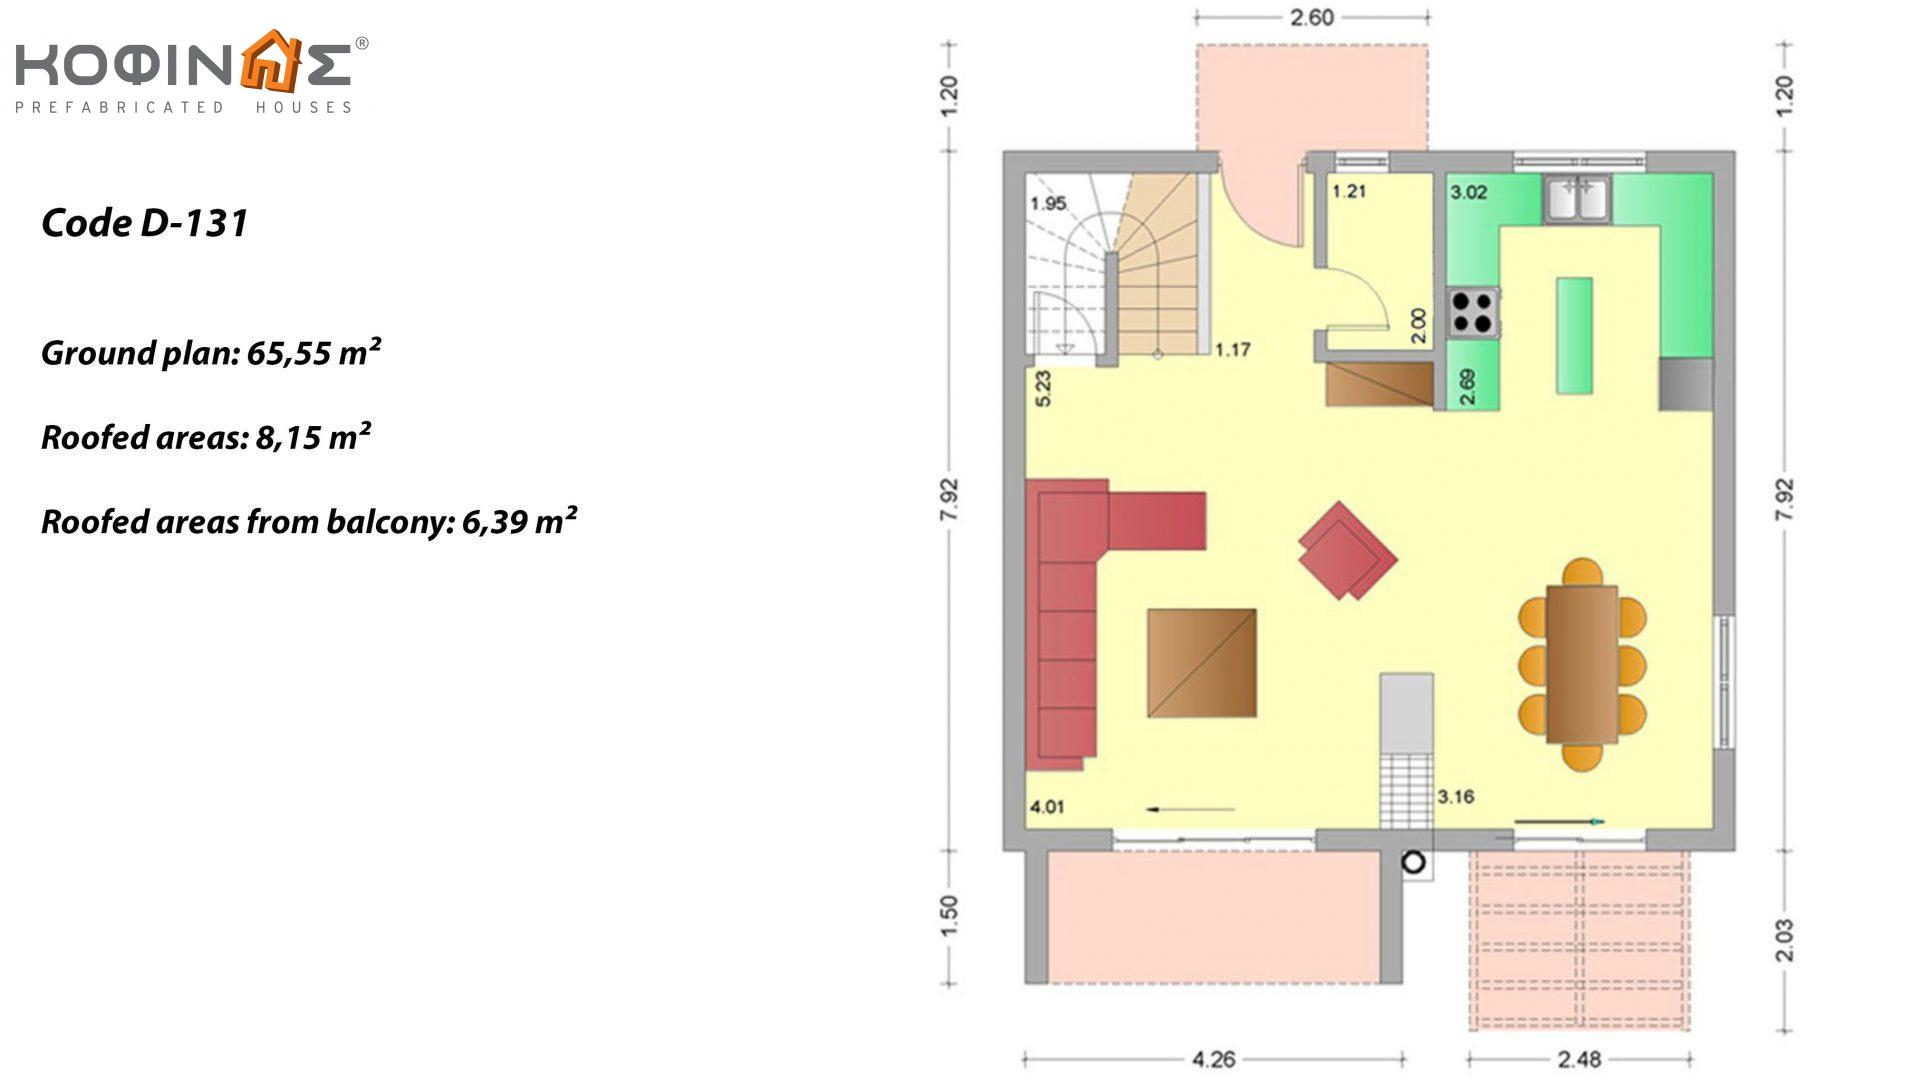 2-story house D-131, total surface of 131,10 m²,roofed areas 20.94 m²,balconies 6.40 m²